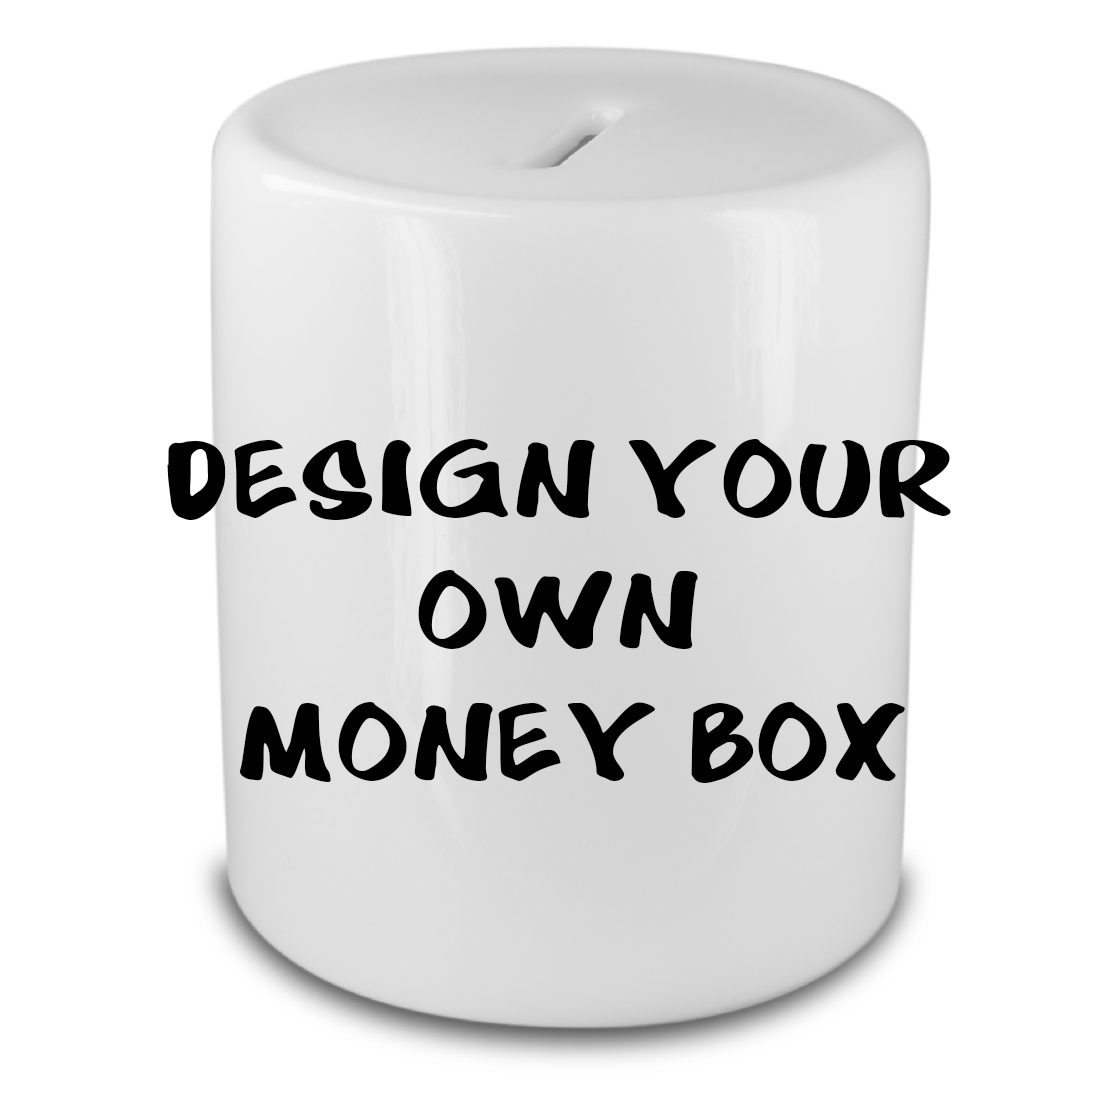 design your own money box memories and gifts ltd